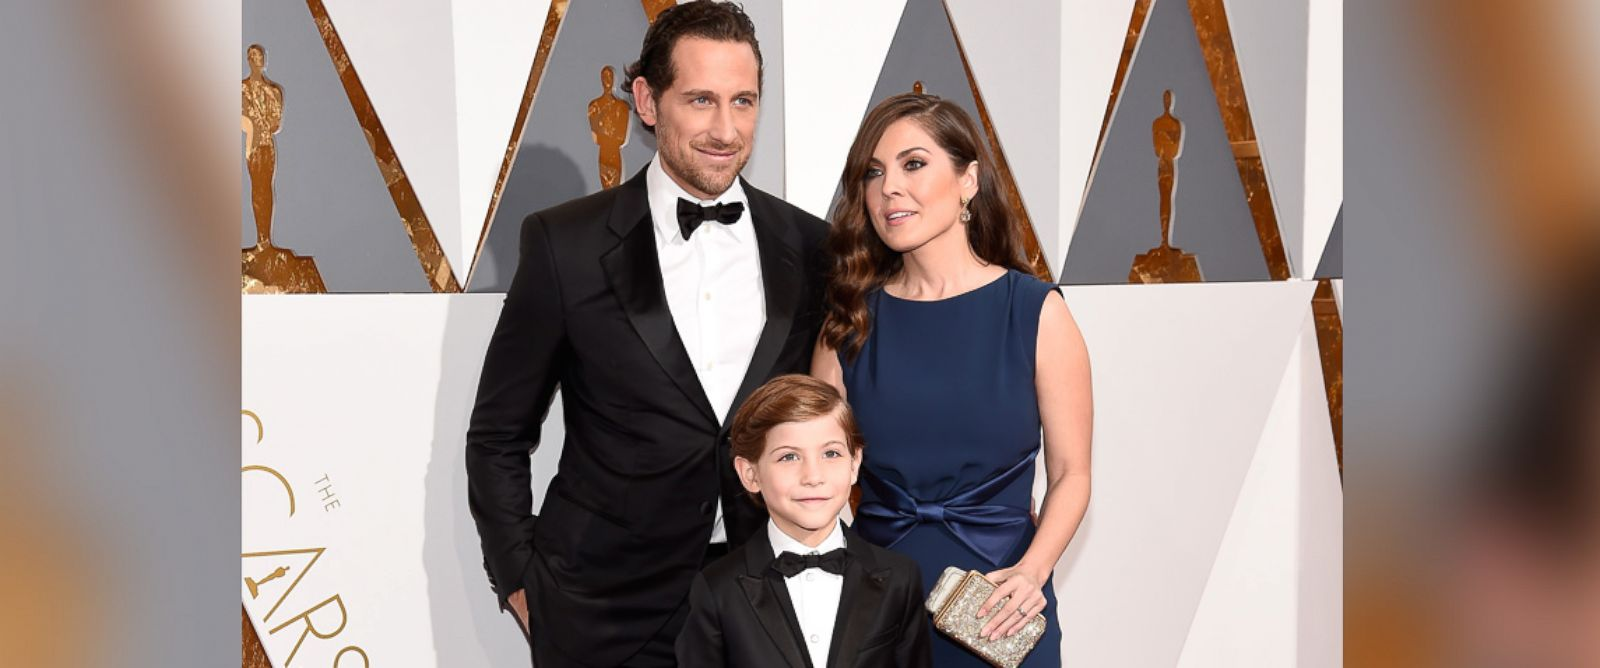 PHOTO: Jason Tremblay, Jacob Tremblay, and Christina Candia Tremblay attend the 88th Annual Academy Awards, Feb. 28, 2016 in Hollywood, California.